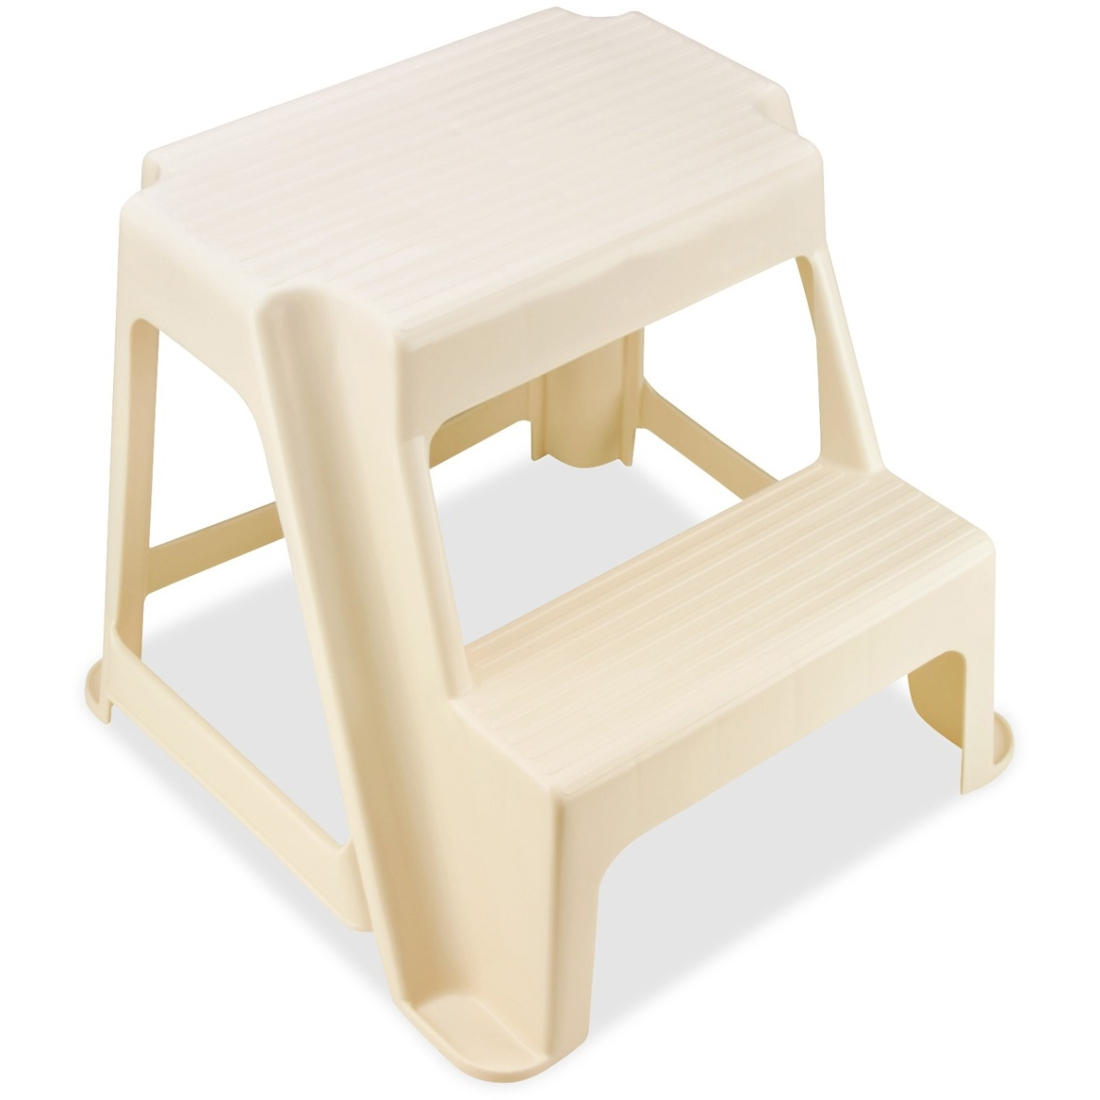 Rubbermaid Two-step Stool - 2 Step - 300 Lb Load Capacity - 18.5  X 18.3  X 16  - Bisque (RCP42221) - Walmart.com  sc 1 st  Walmart & Rubbermaid Two-step Stool - 2 Step - 300 Lb Load Capacity - 18.5 ... islam-shia.org